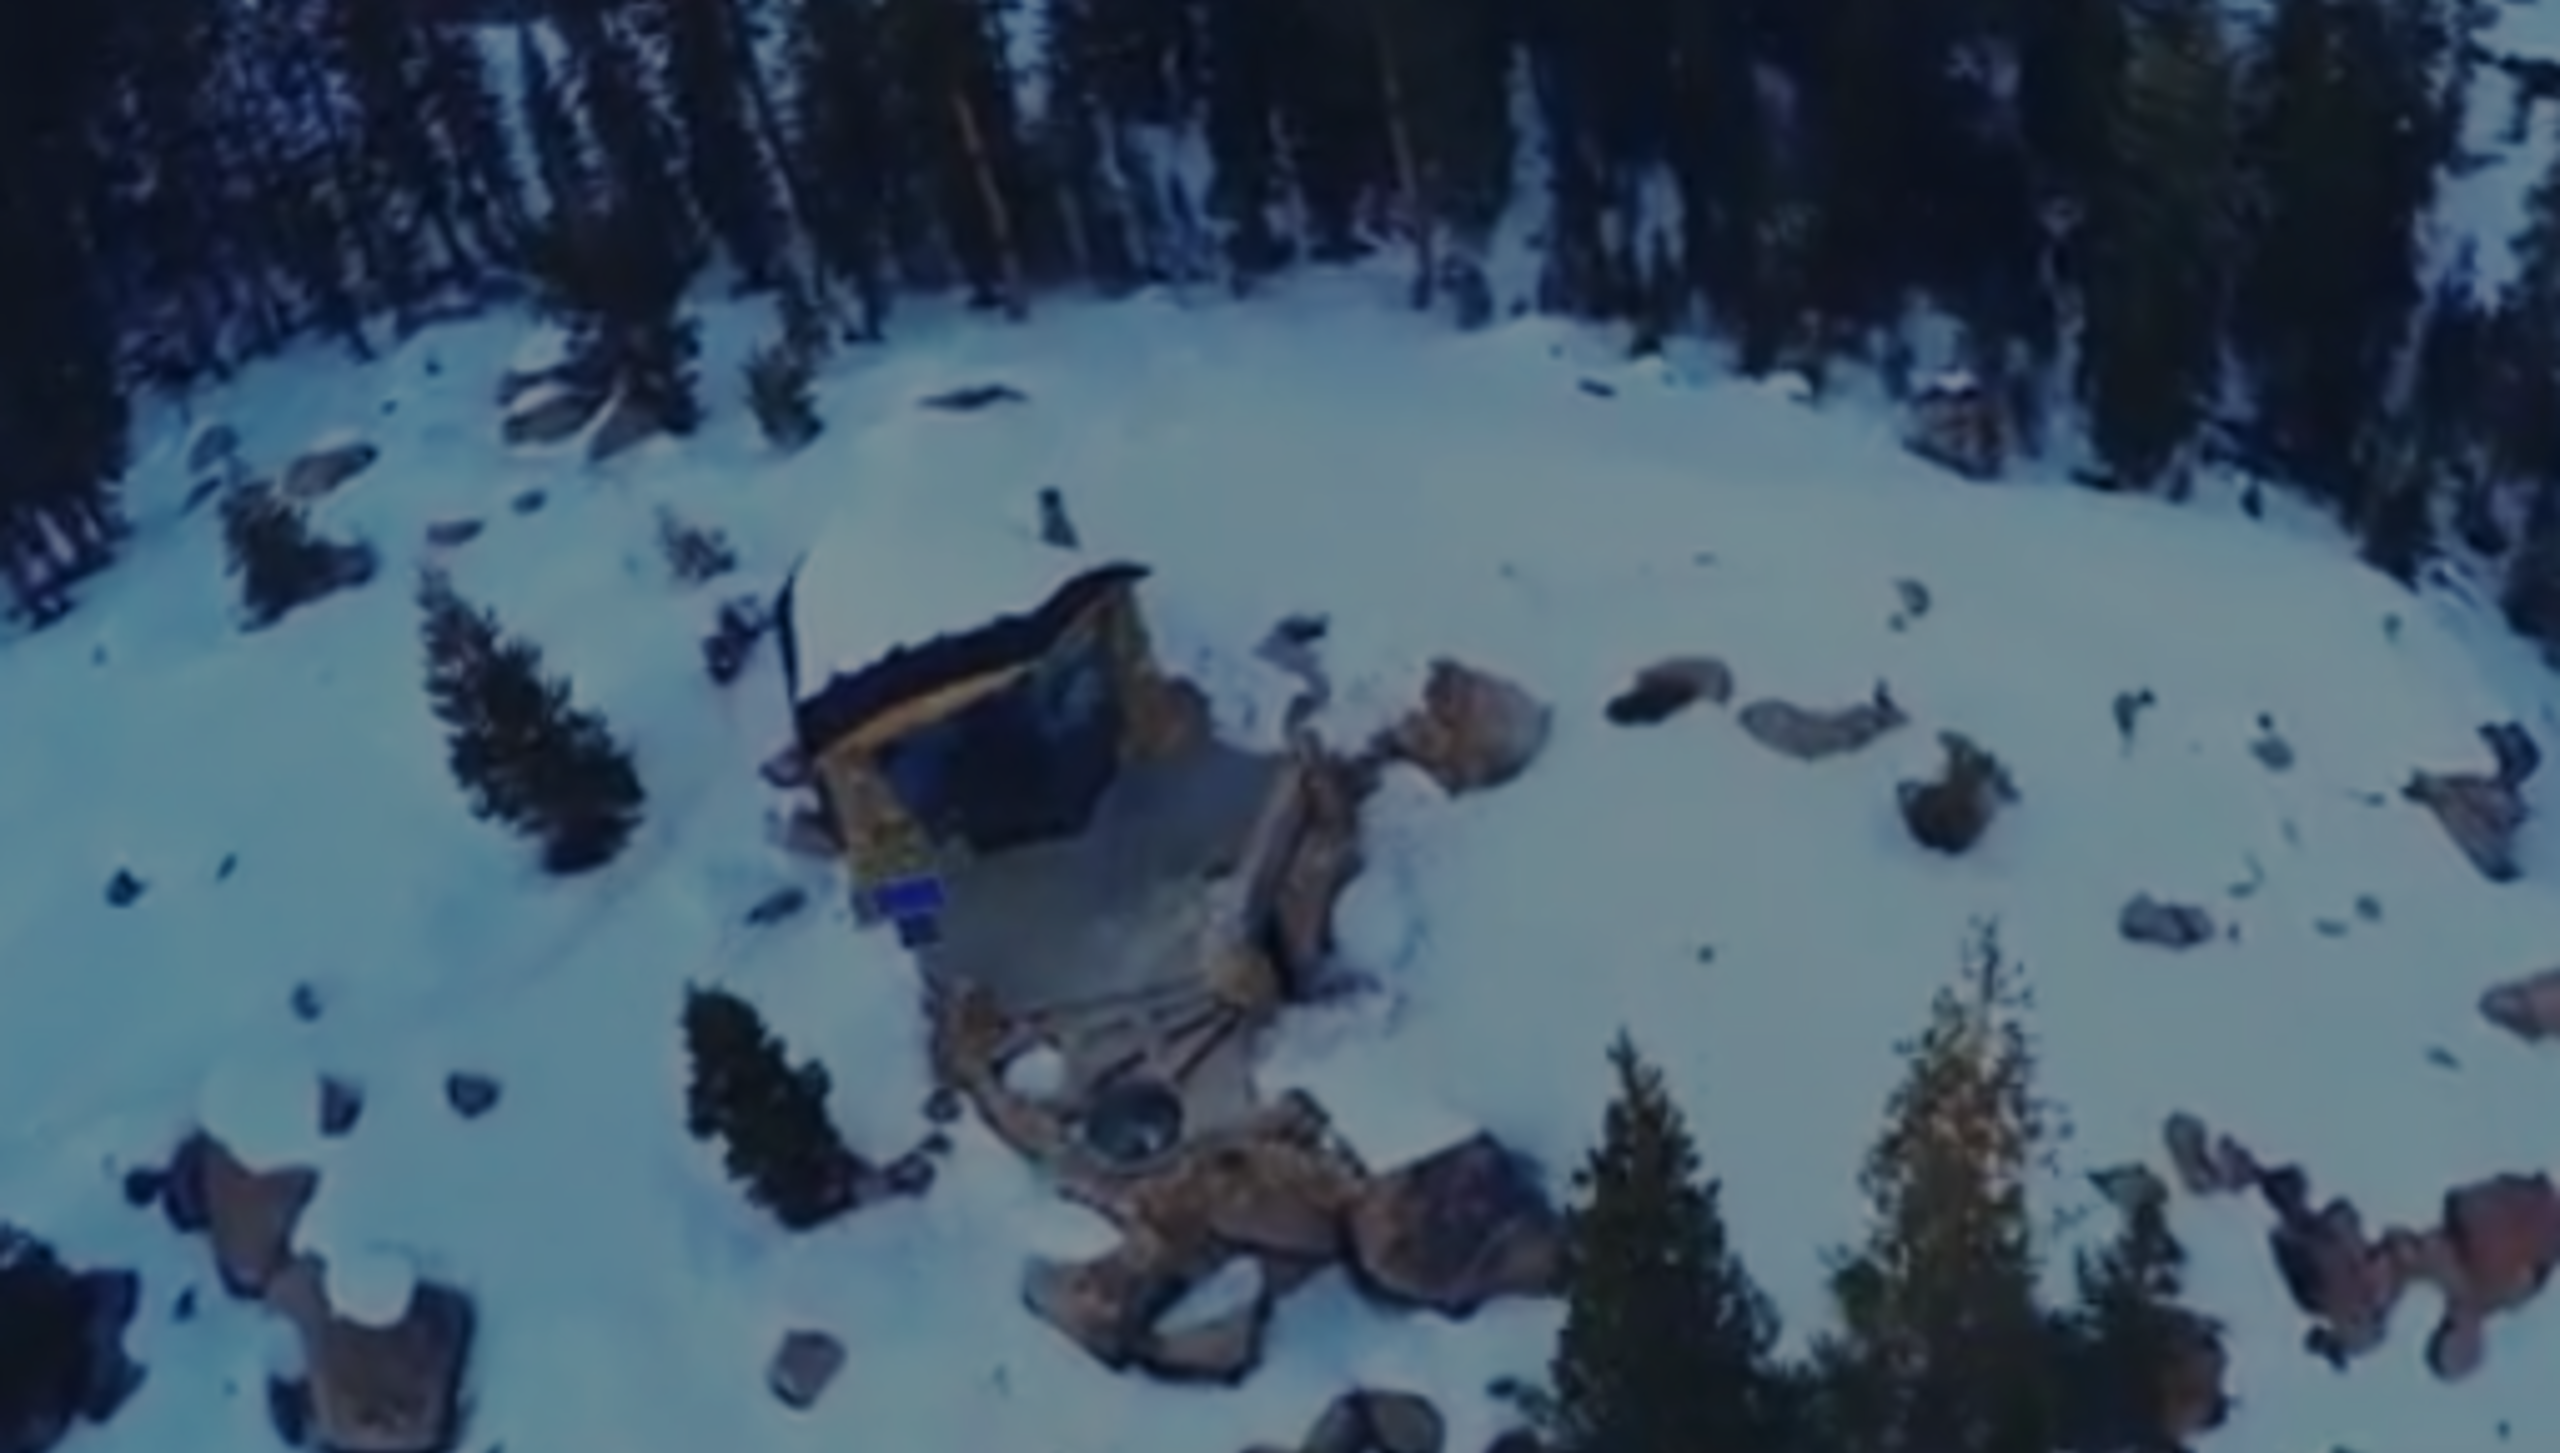 This Guy Hid His Tiny House On Top Of A Huge Mountain. When You Walk Inside, WOW!